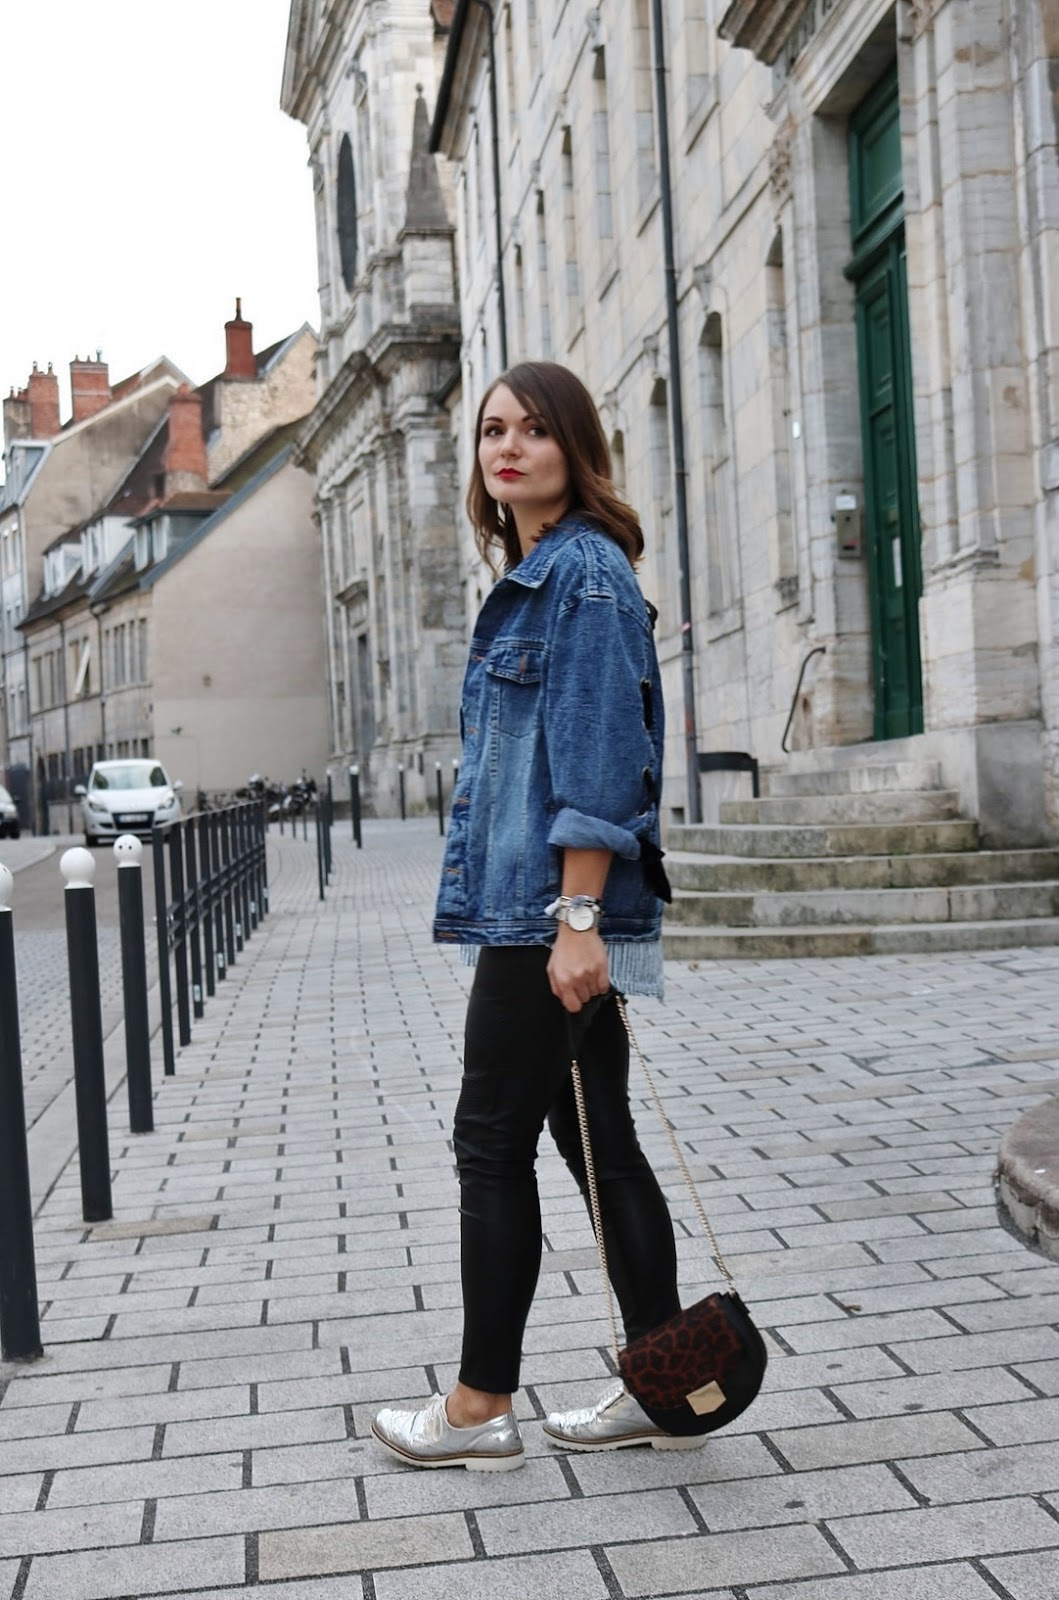 pauline-dress-tenue-look-besancon-veste-denim-lace-up-noir-tregging-chemise-rayee-sac-leo-marche-side